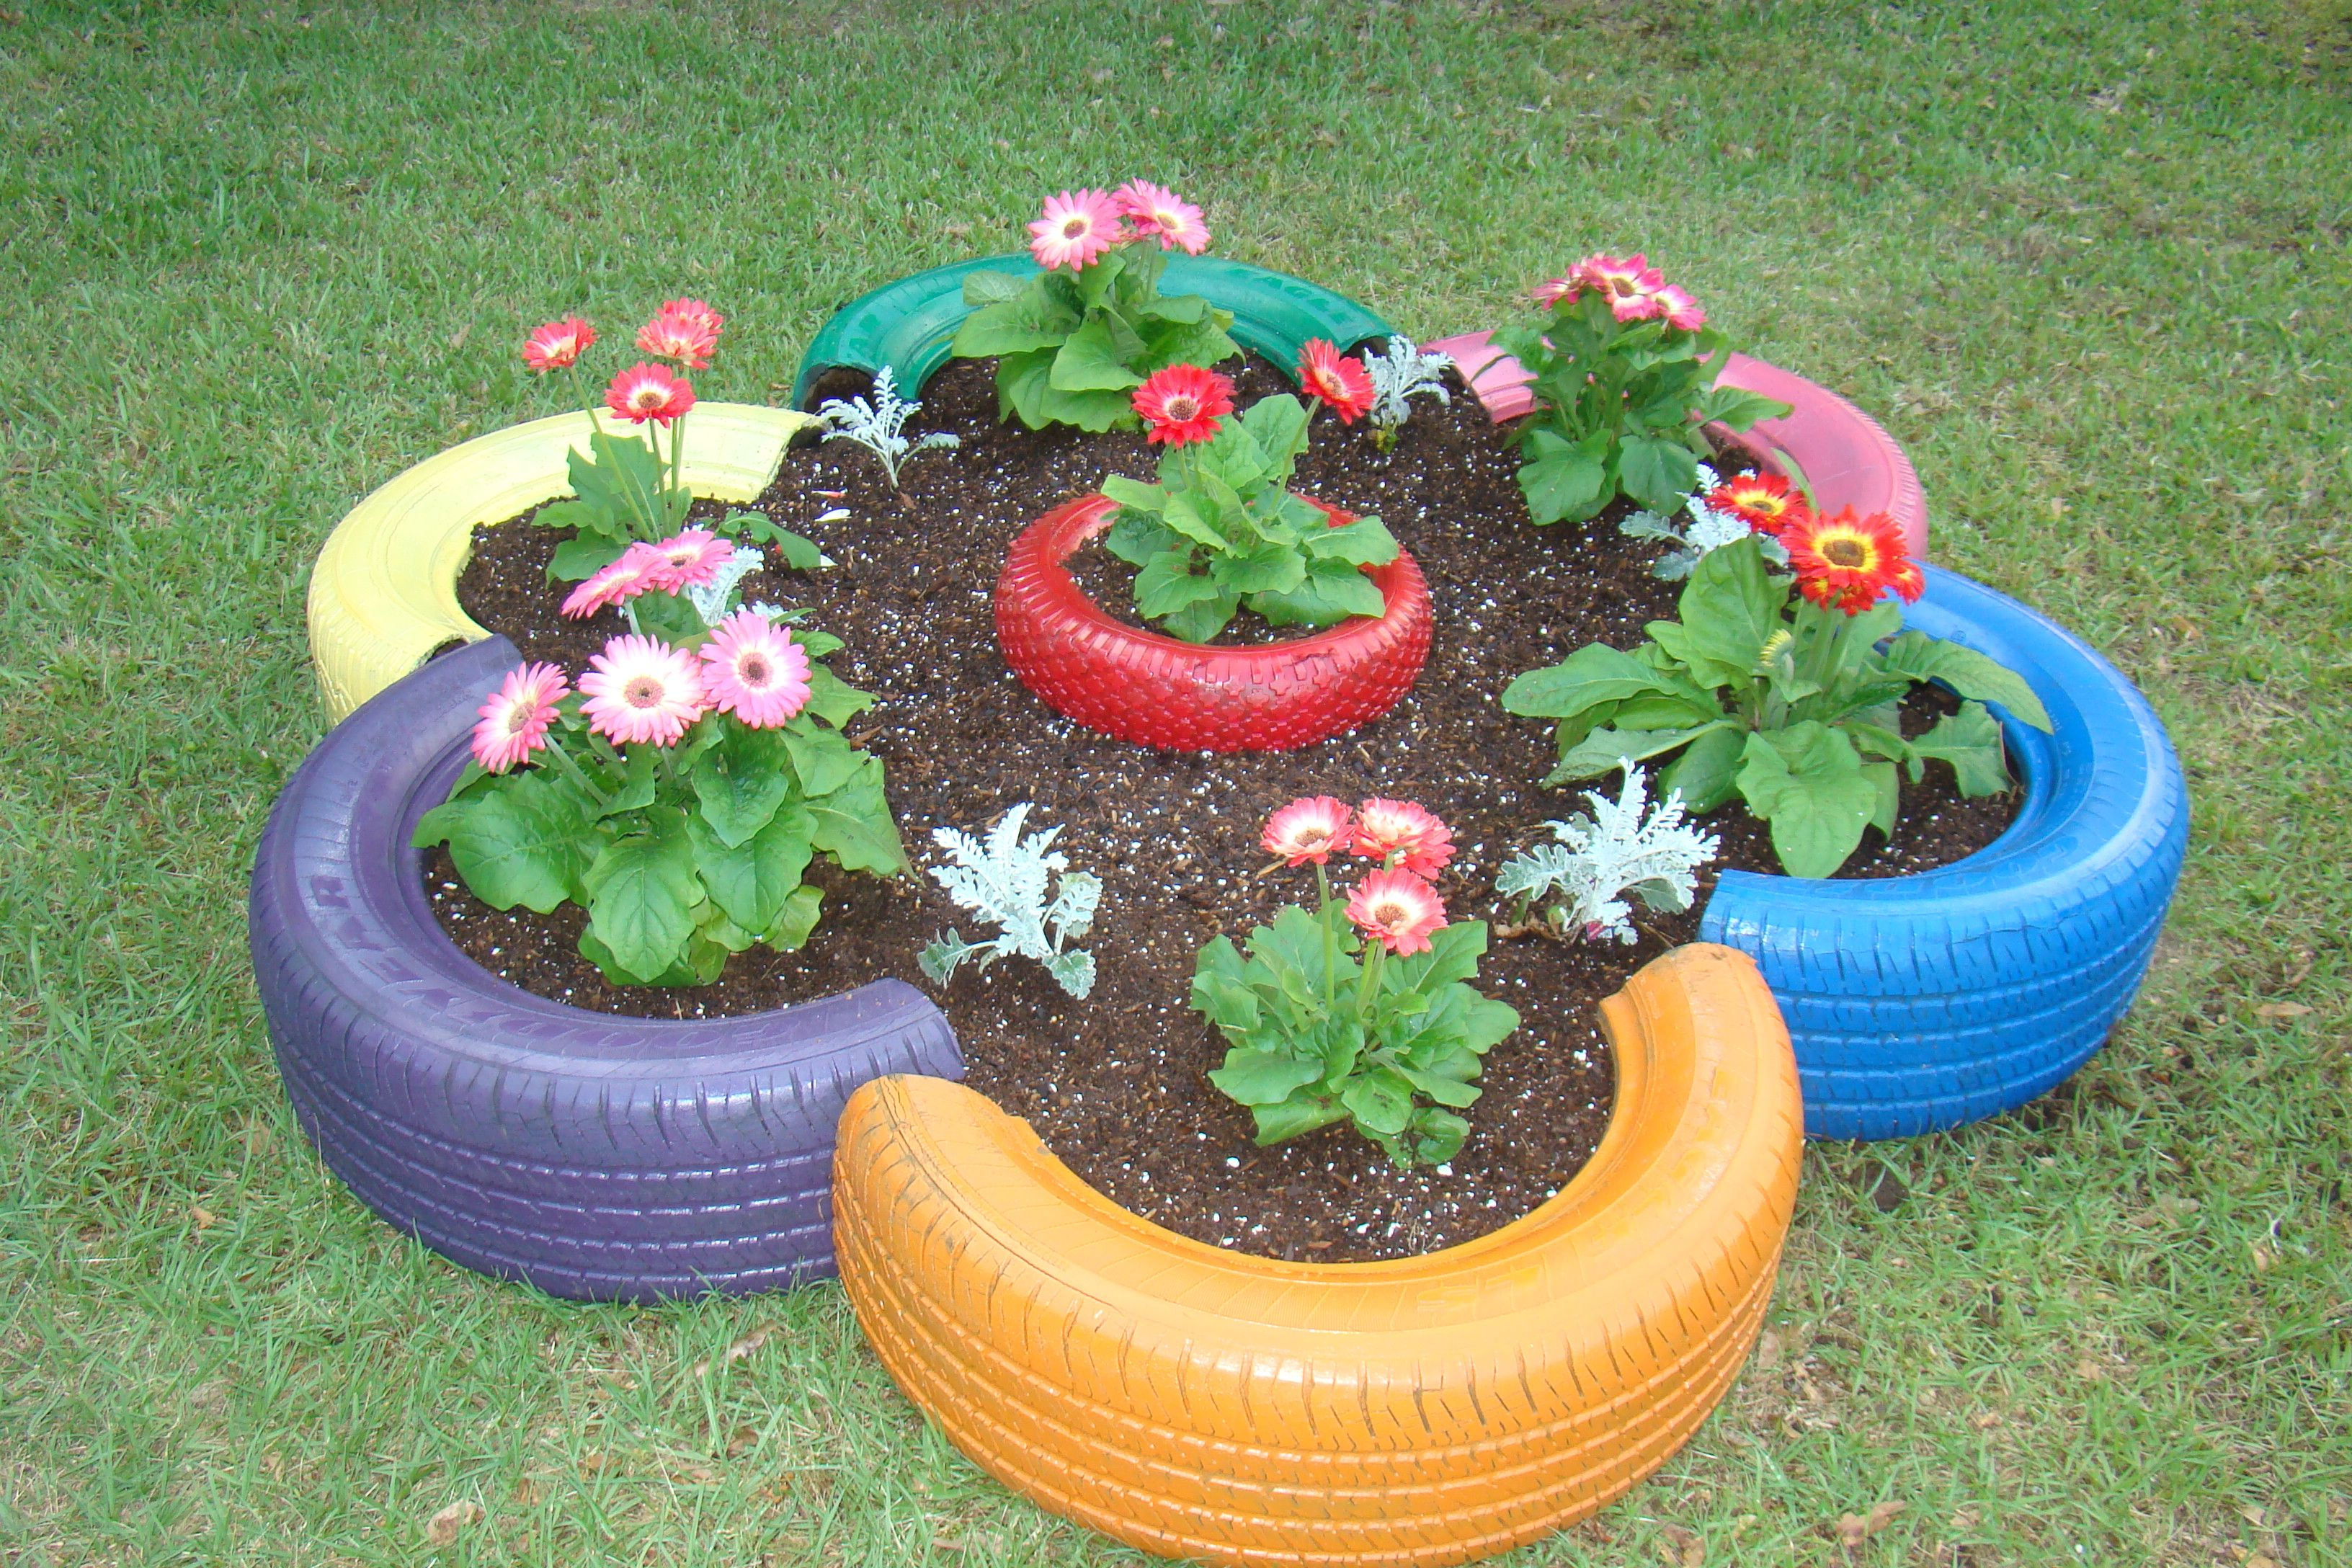 Flower Bed Made From Old Tires And Small Tire In The Center Diy Garden Tire Garden Diy Garden Decor